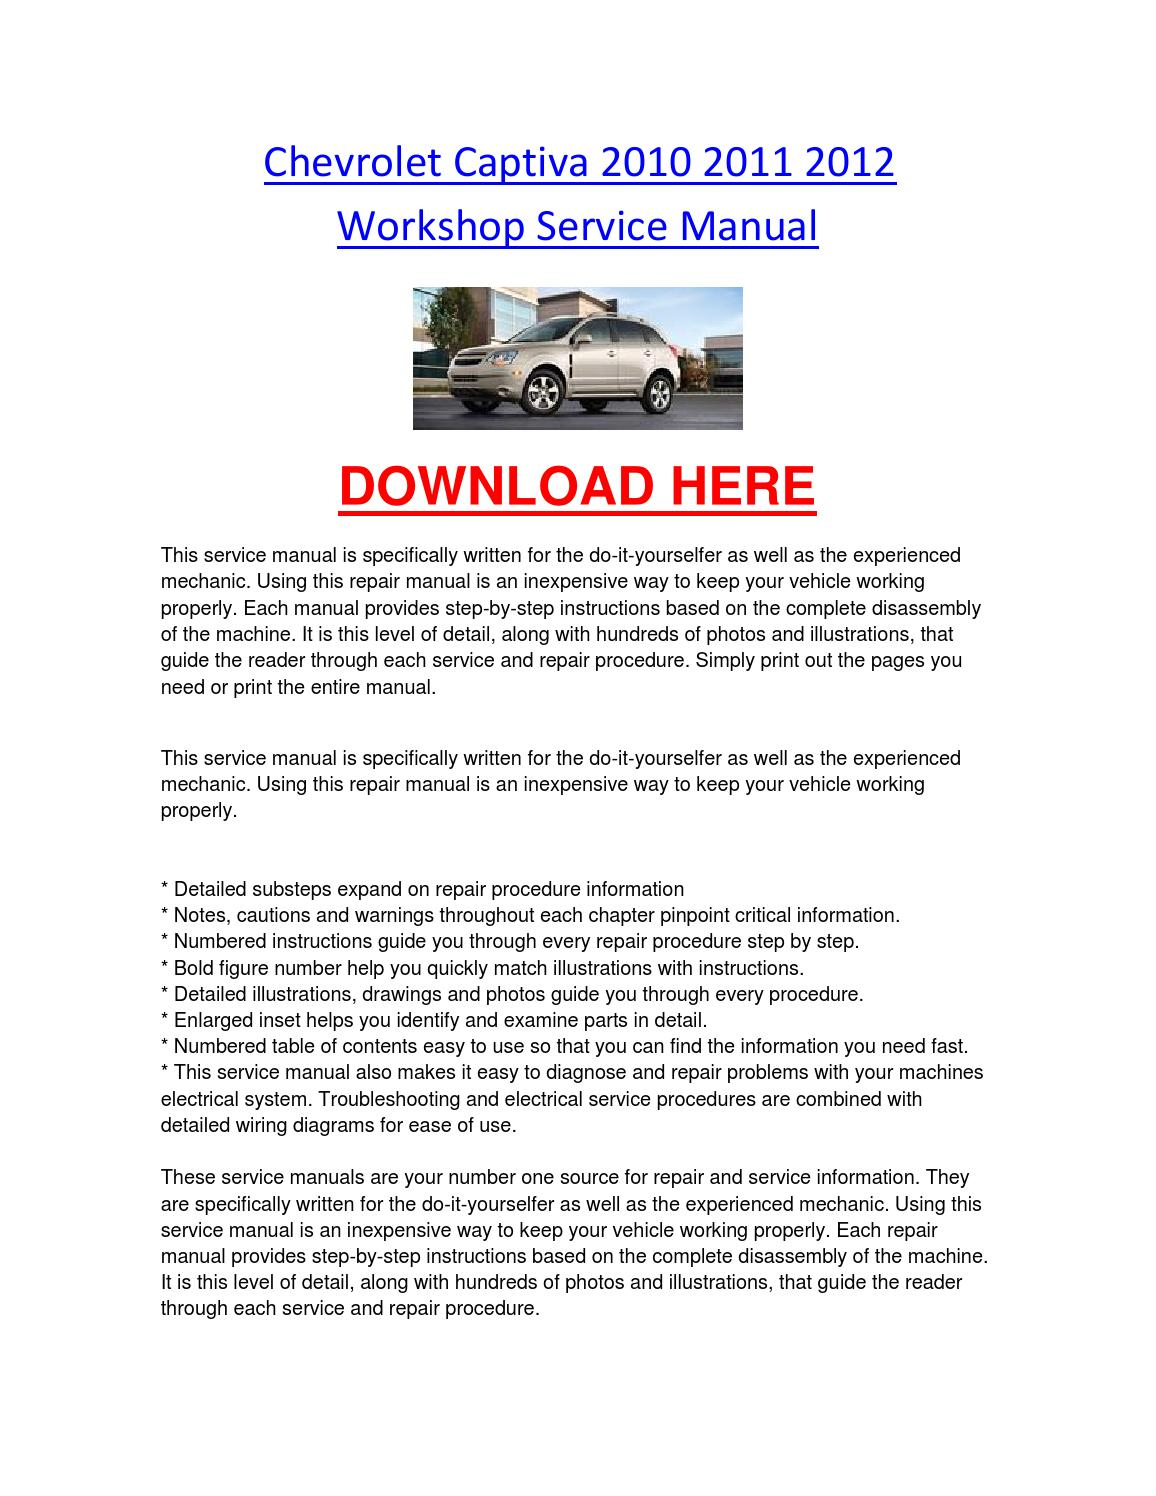 Chevrolet captiva 2010 2011 2012 workshop service manual by  chevroletservice - issuu